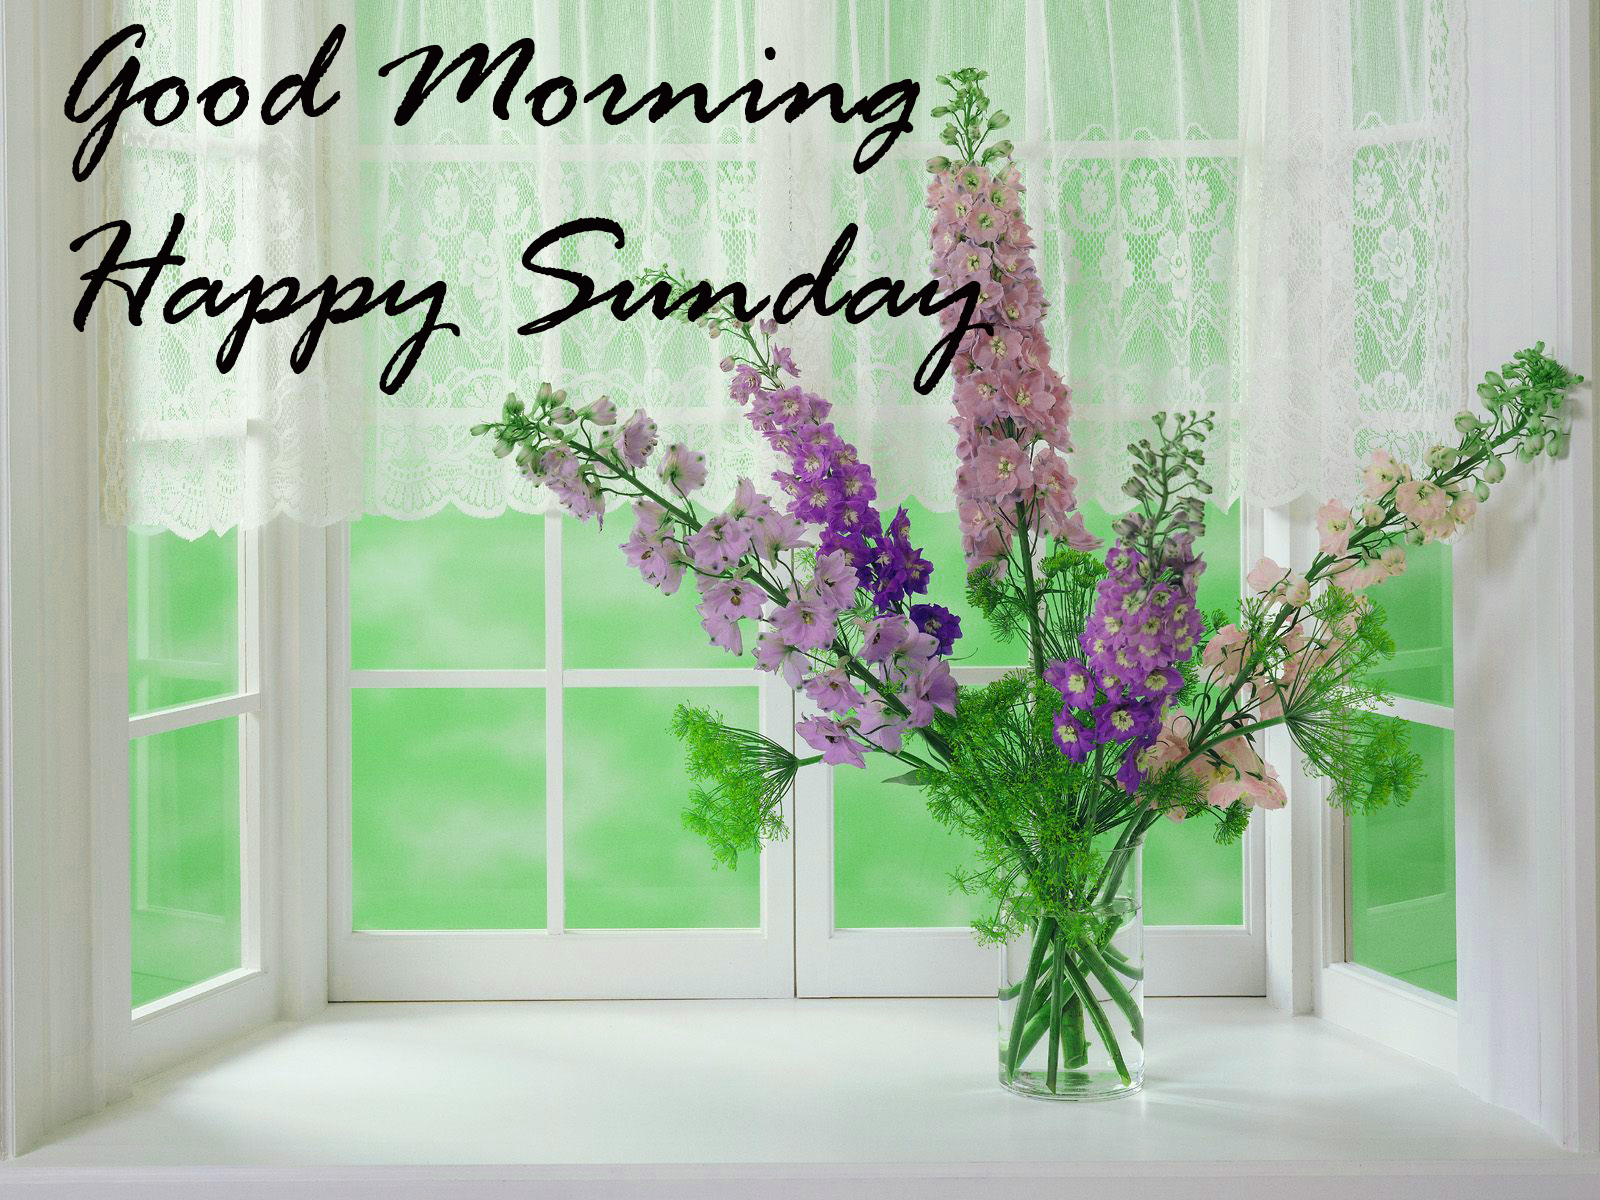 Sunday Good Morning Images Photo Pic hd